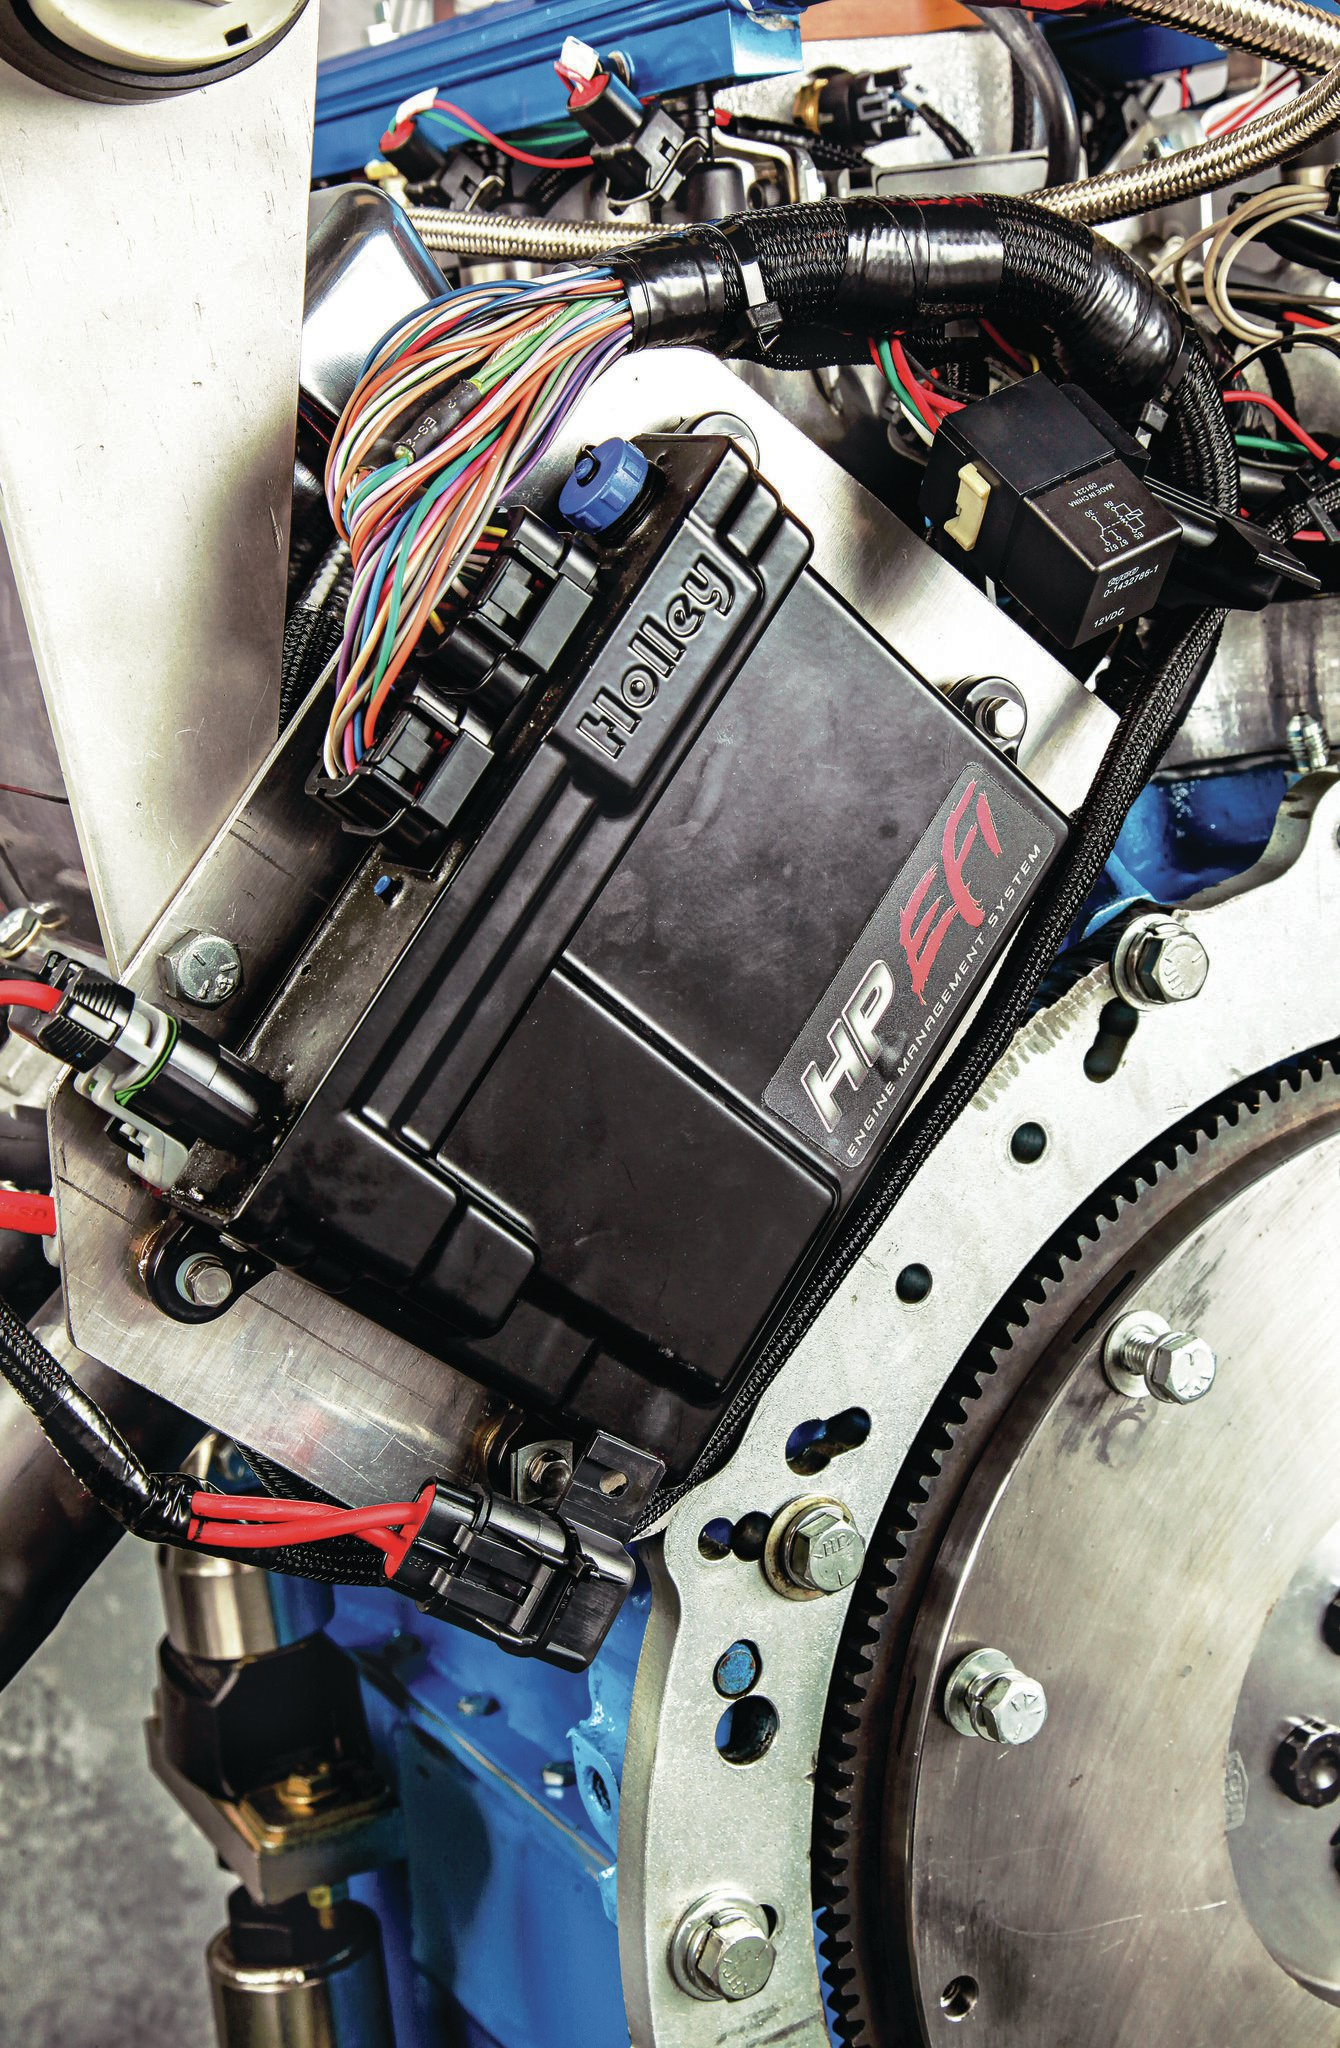 Holley EFI takes control of the spark timing and fuel-delivery functions.